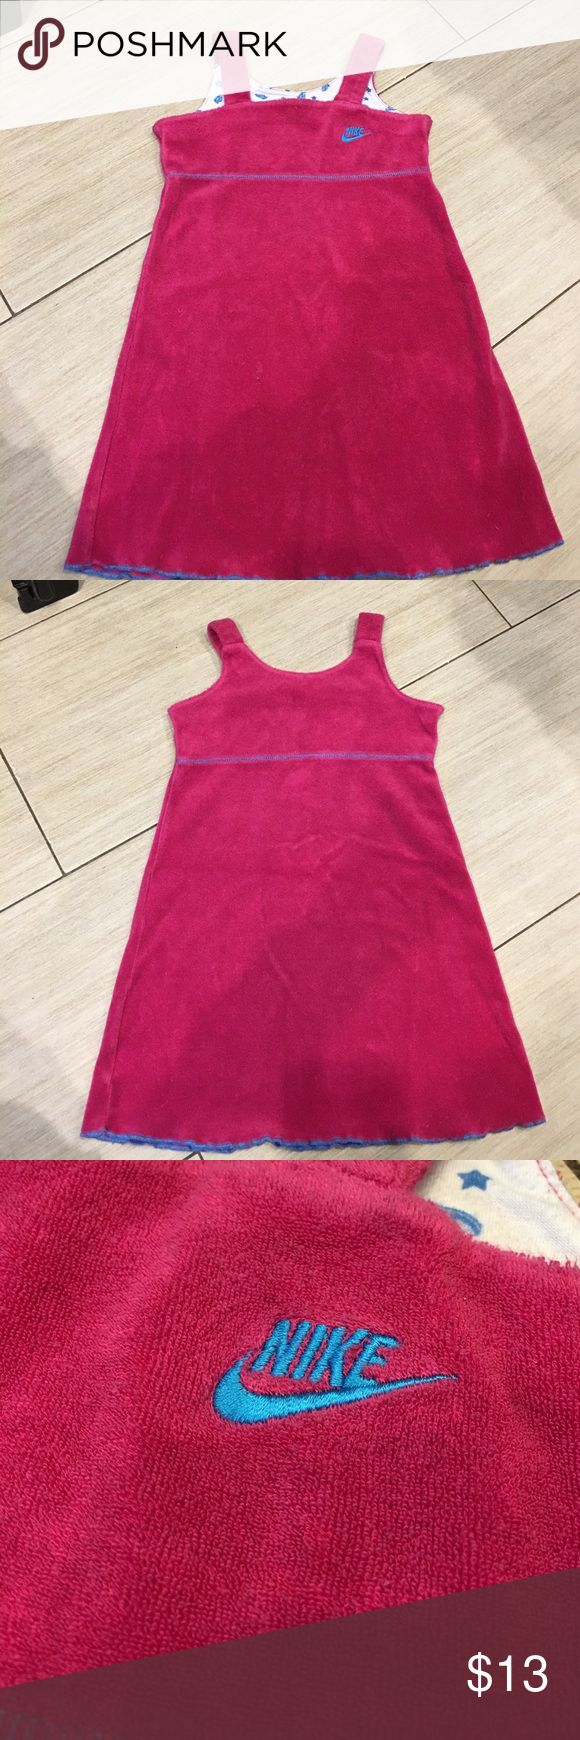 Girls size 6 NIKE dress/cover up Girls size 6 NIKE dress/cover up. It's like a really soft towel like stretch material 80% cotton 20% polyester Nike Other